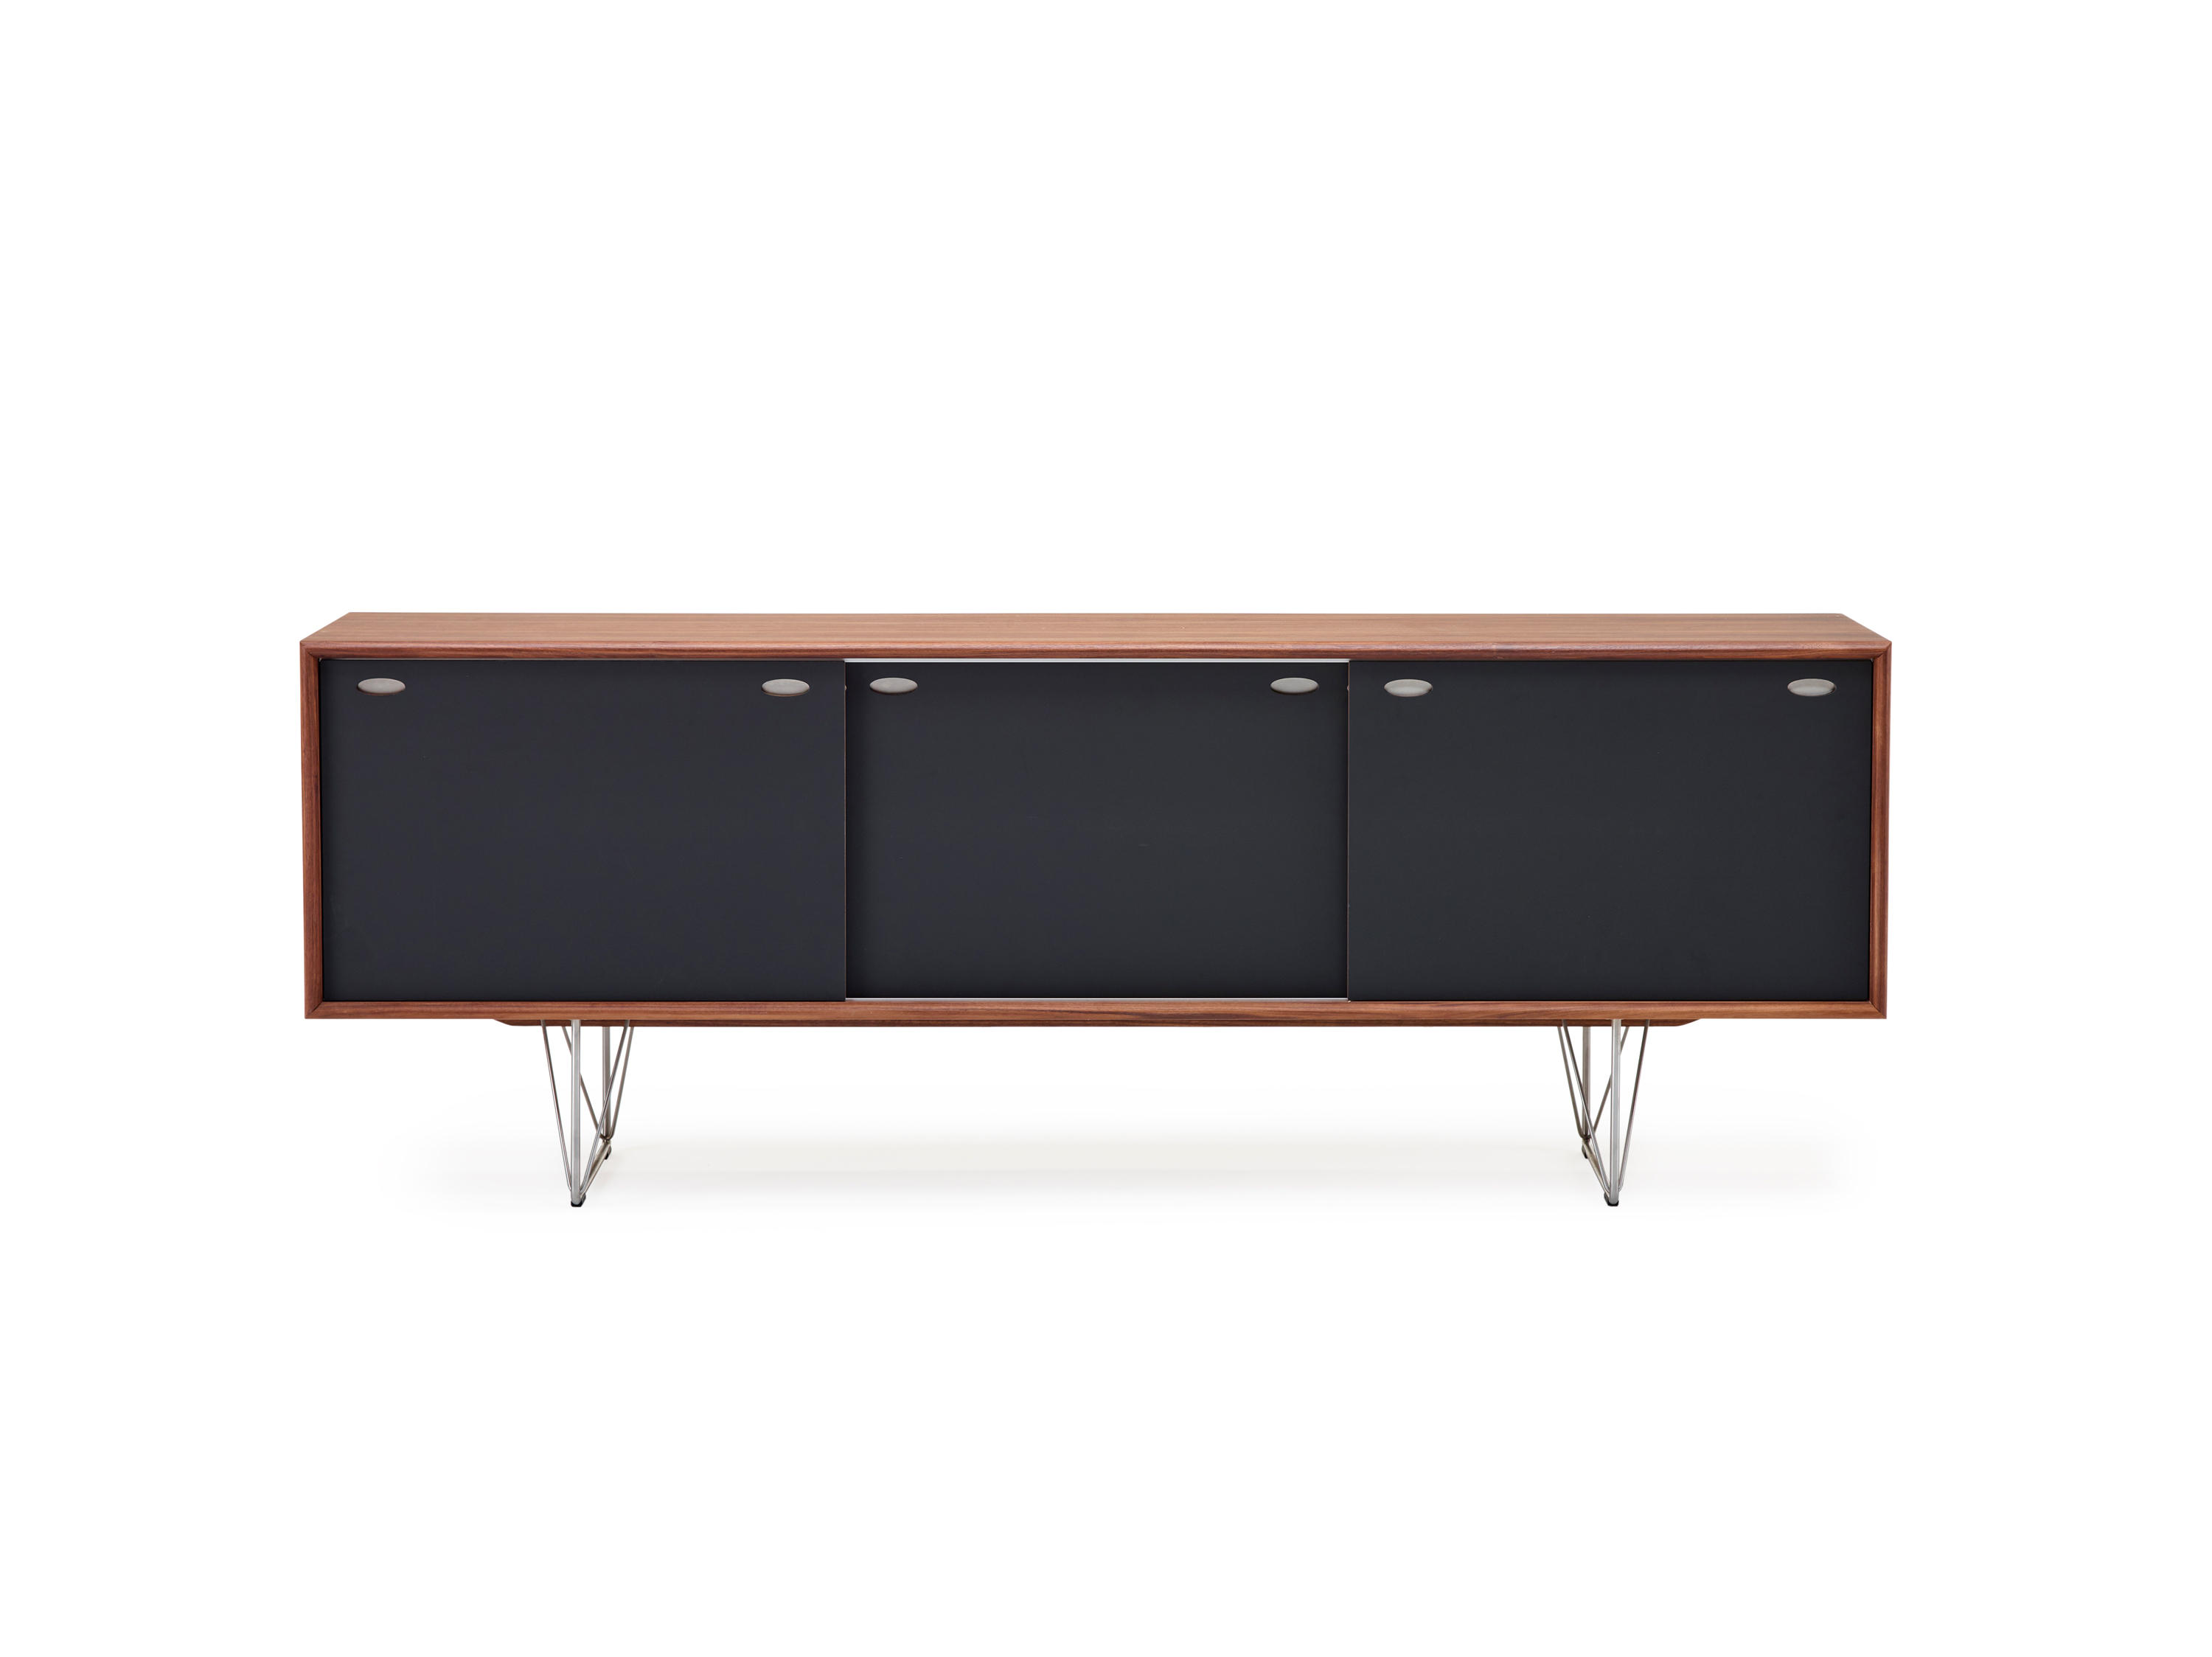 Tv Lowboard Zürich Ak 2861 Sideboard Sideboards From Naver Collection Architonic